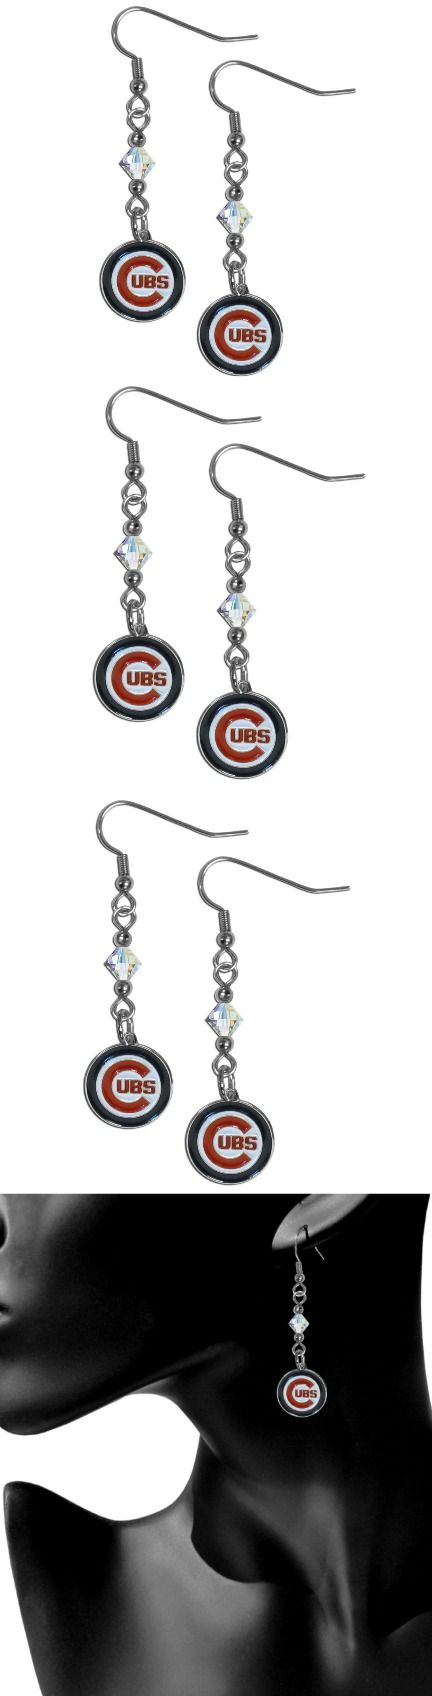 Chicago Cubs Crystal Dangle Earrings! Click The Image To Buy It Now or Tag Someone You Want To Buy This For. #ChicagoCubs